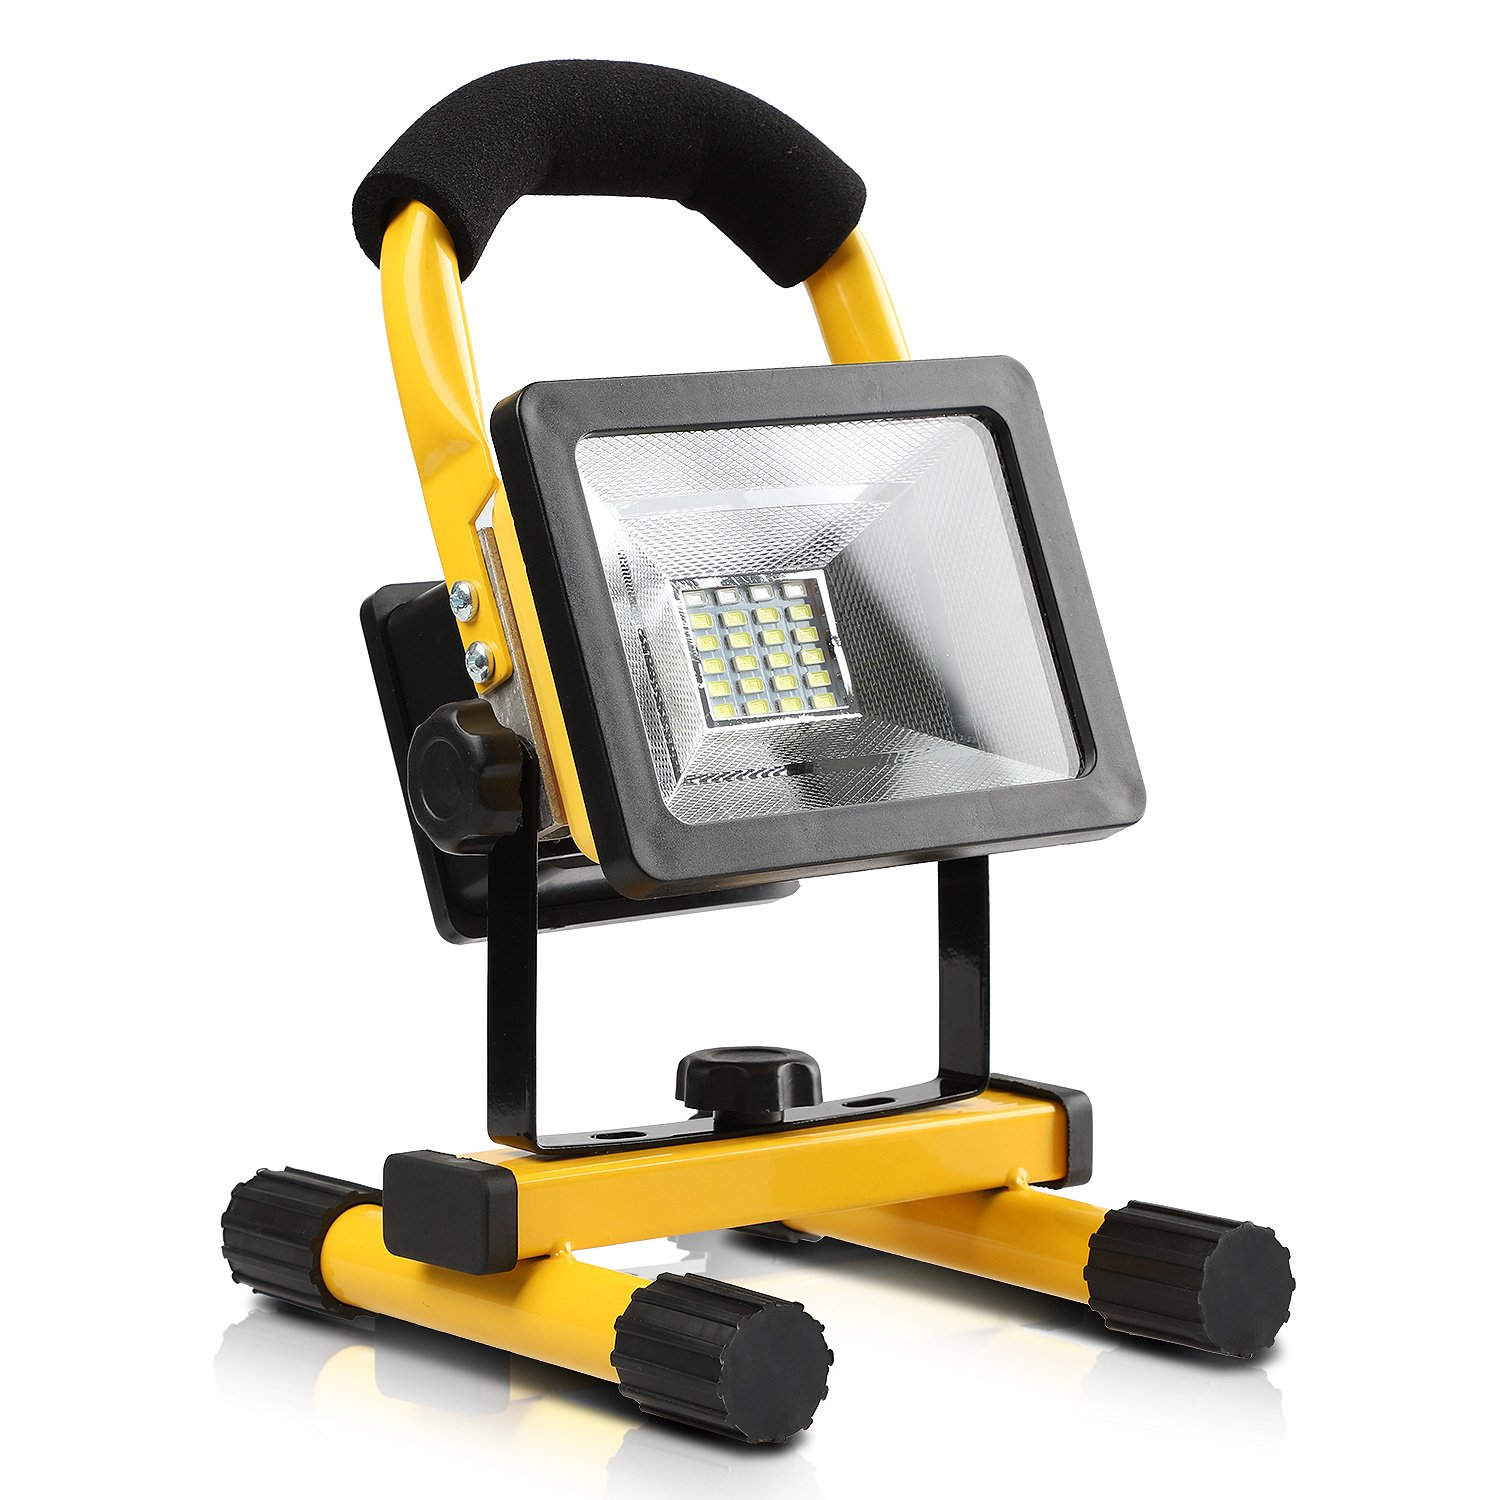 DAMULY LED Portable work lights Spotlights Work Lights floor lights camping lights, Rechargeable 3 18650 Lithium-ion Batteries USB Ports to charge Digital Devices and Special SOS Modes Emergency Light